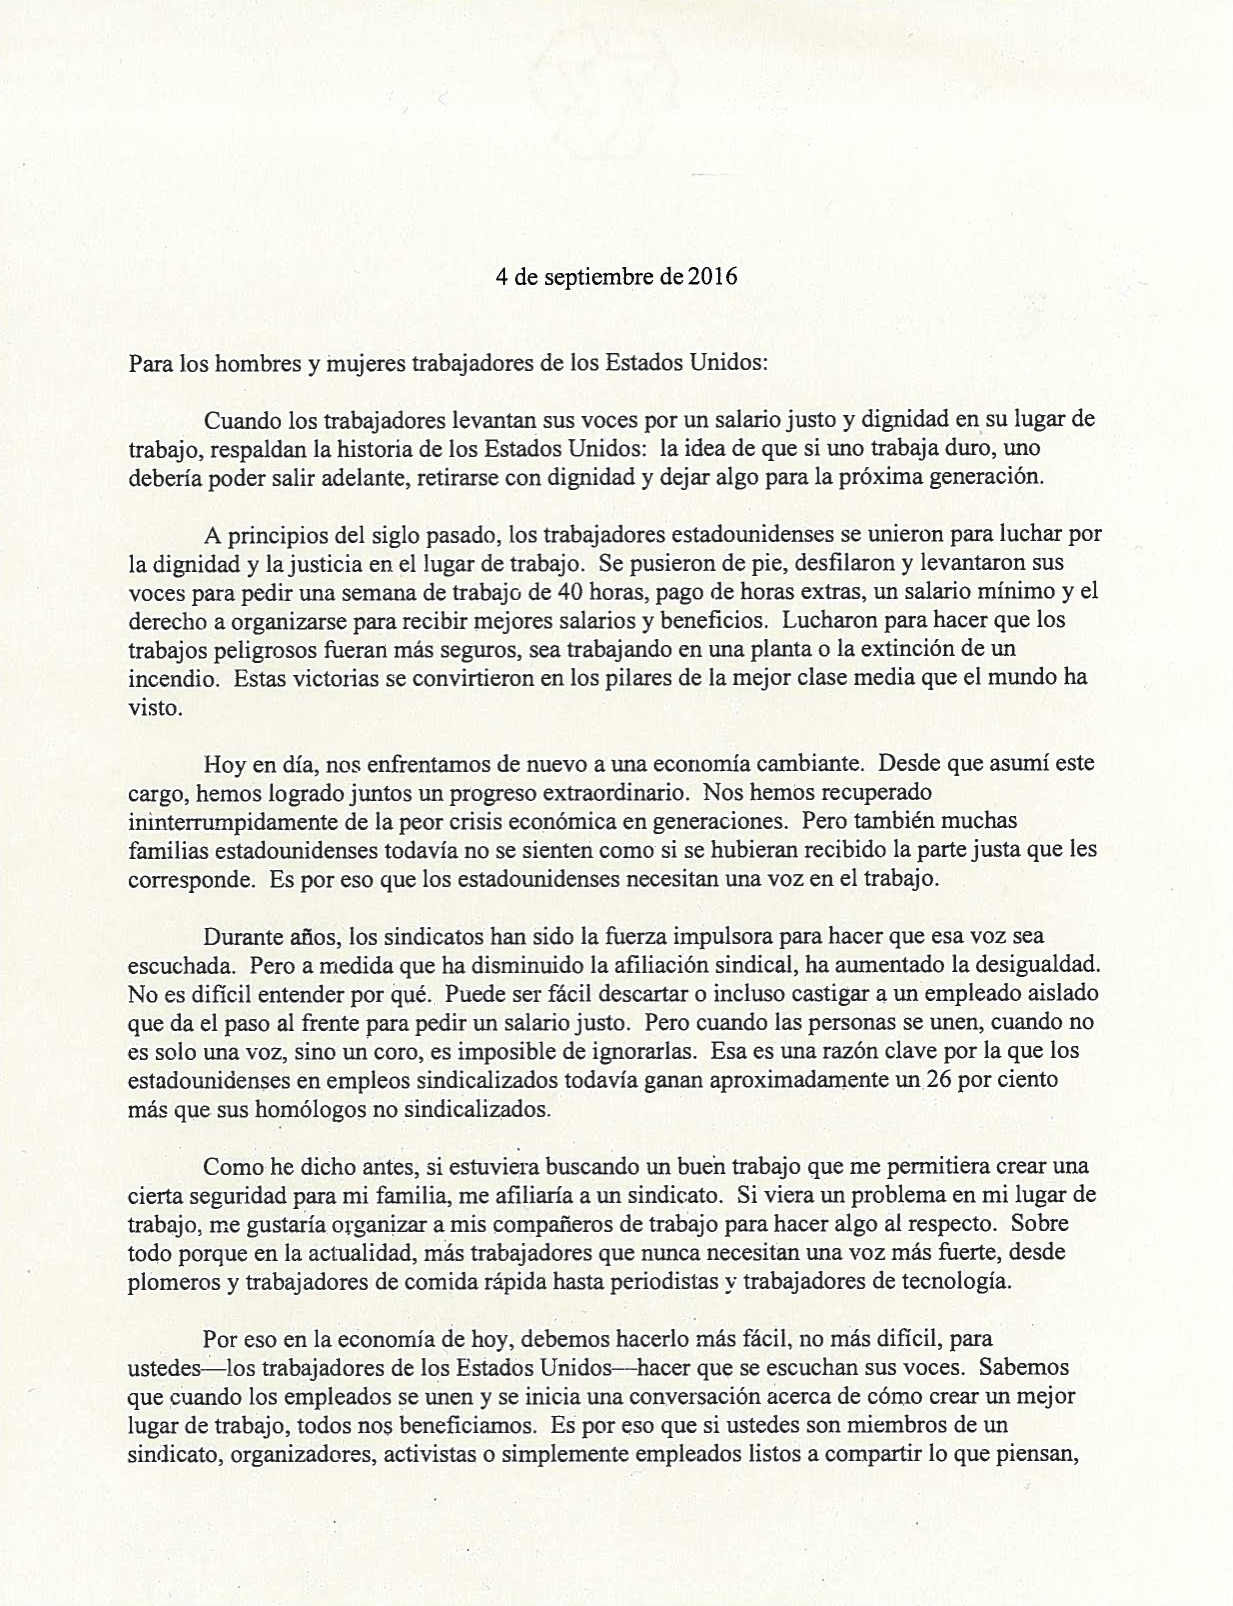 Labor Day Letter from President Obama (Spanish version)